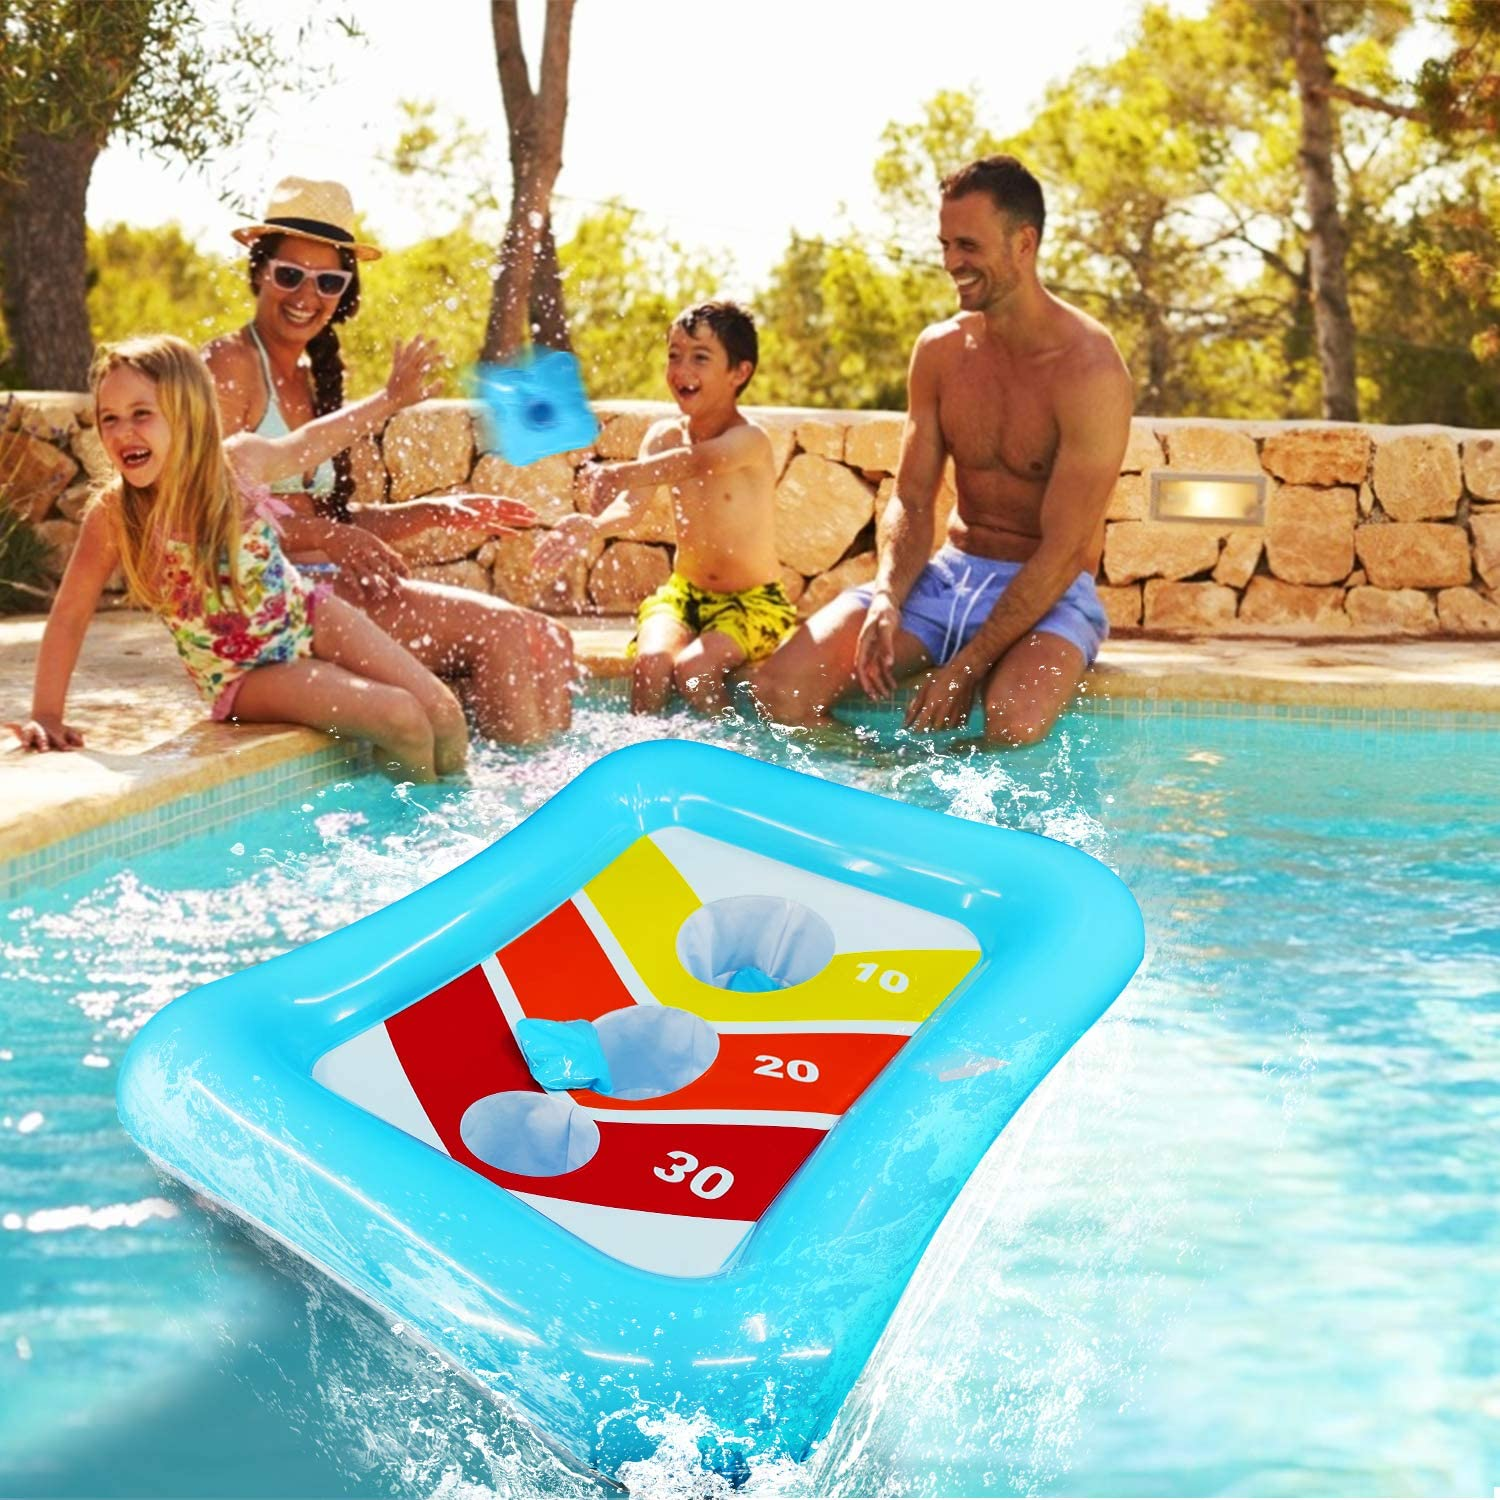 iGeeKid 36 Swimming Pool Ring Toss Games Inflatable Pool Toys Floating Toss Game for Kids Adults Floating Cornhole Board Set Swimming Toys Summer Pool Party Water Carnival Outdoor Beach Toy